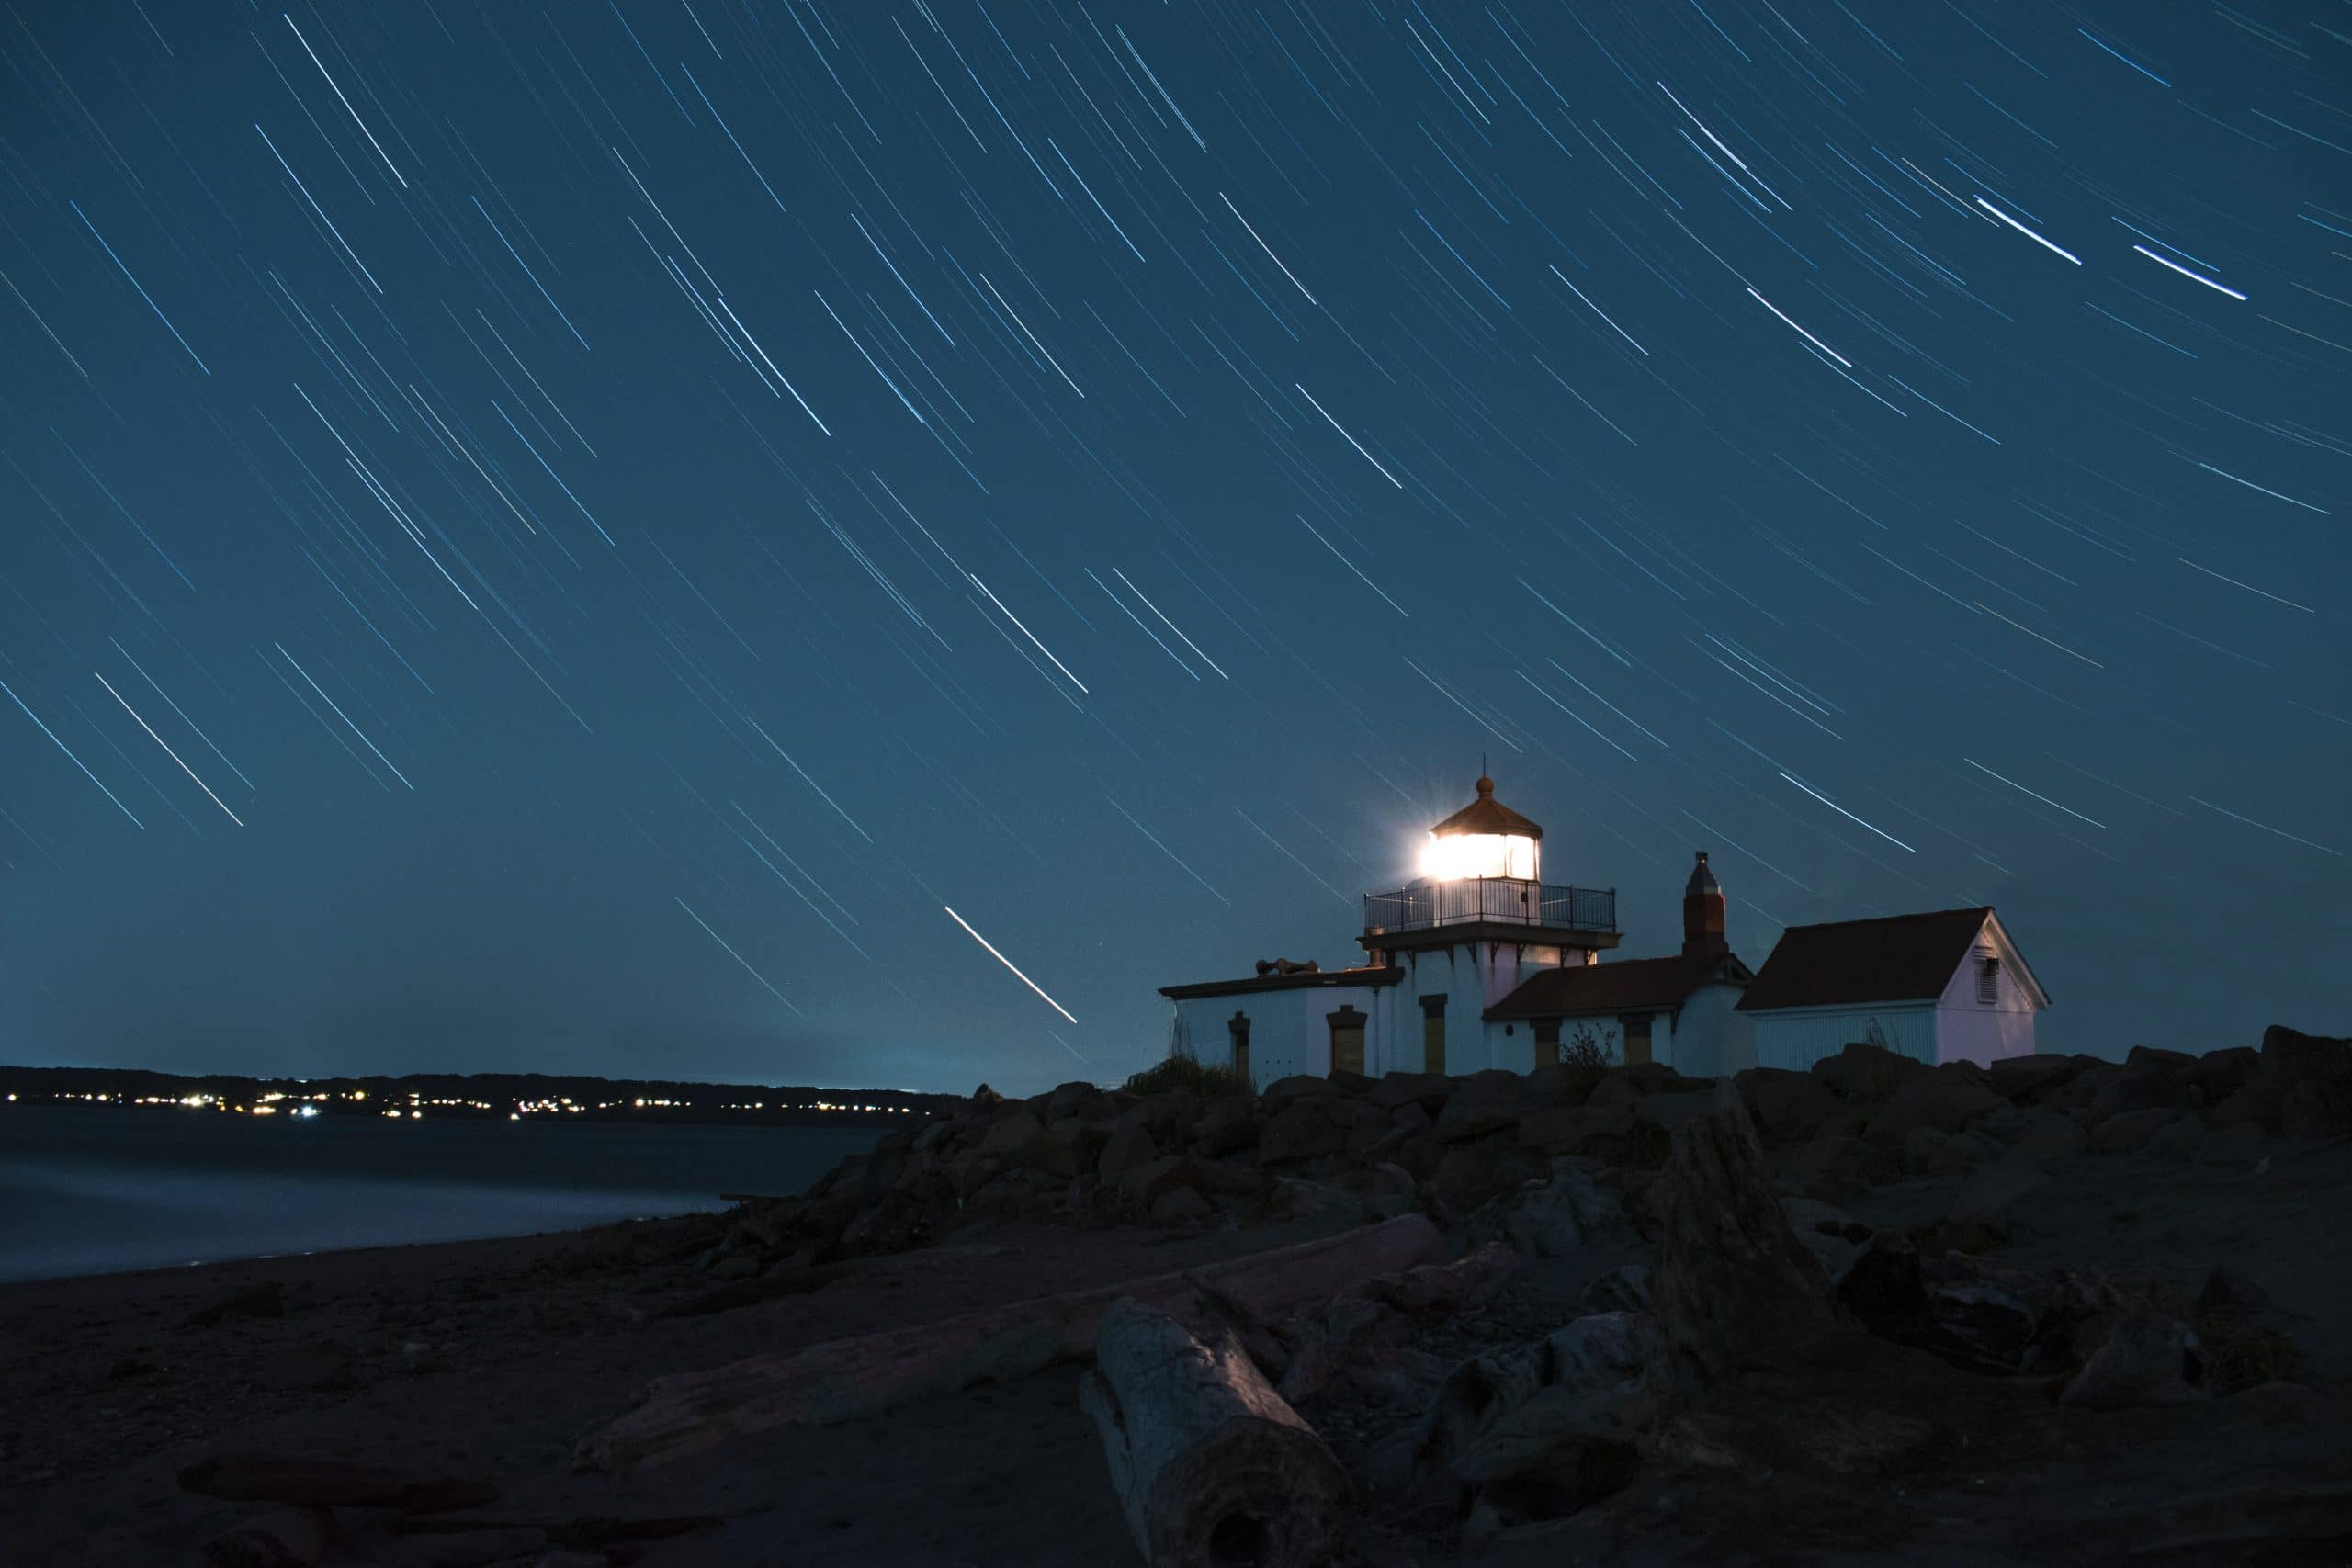 Stars in the night sky over a Seattle lighthouse